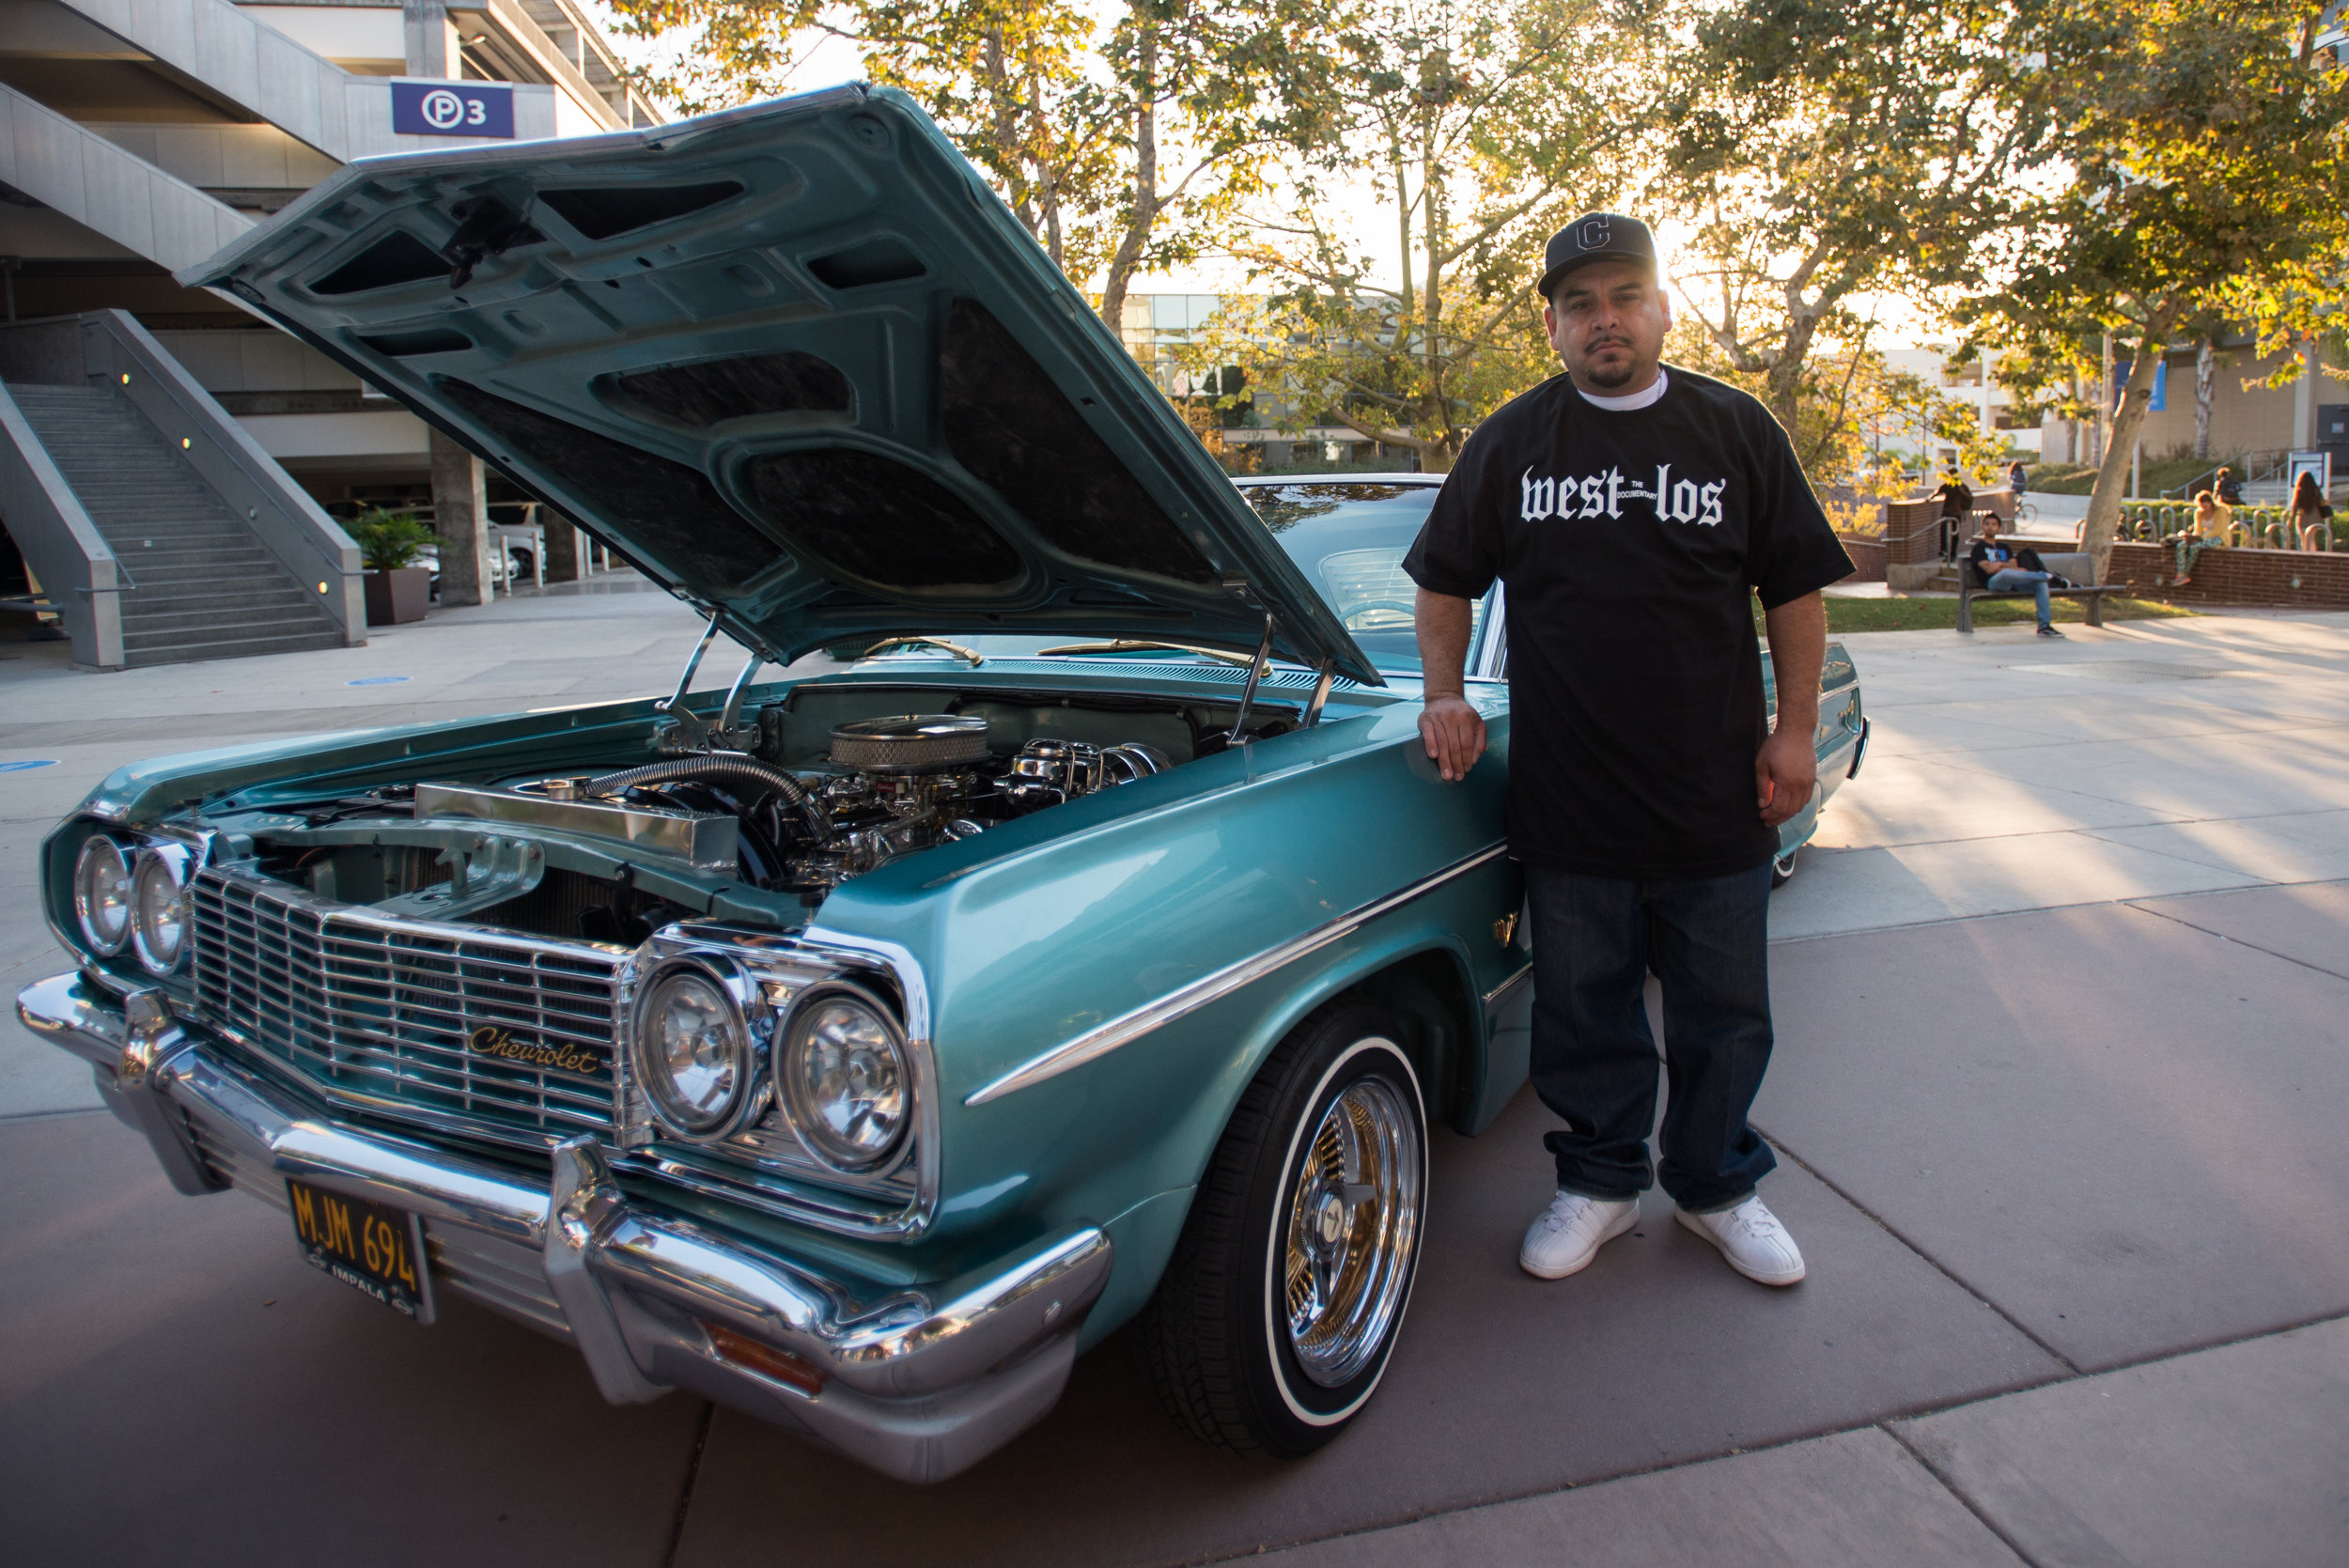 Charlie Chacon producer and creator of West Los:The Documentary poses for a portrait next to his 64' Chevy Impala on Tuesday September 26, 2017 at Santa Monica College Main Campus in Santa Monica, California. (Josue Martinez)